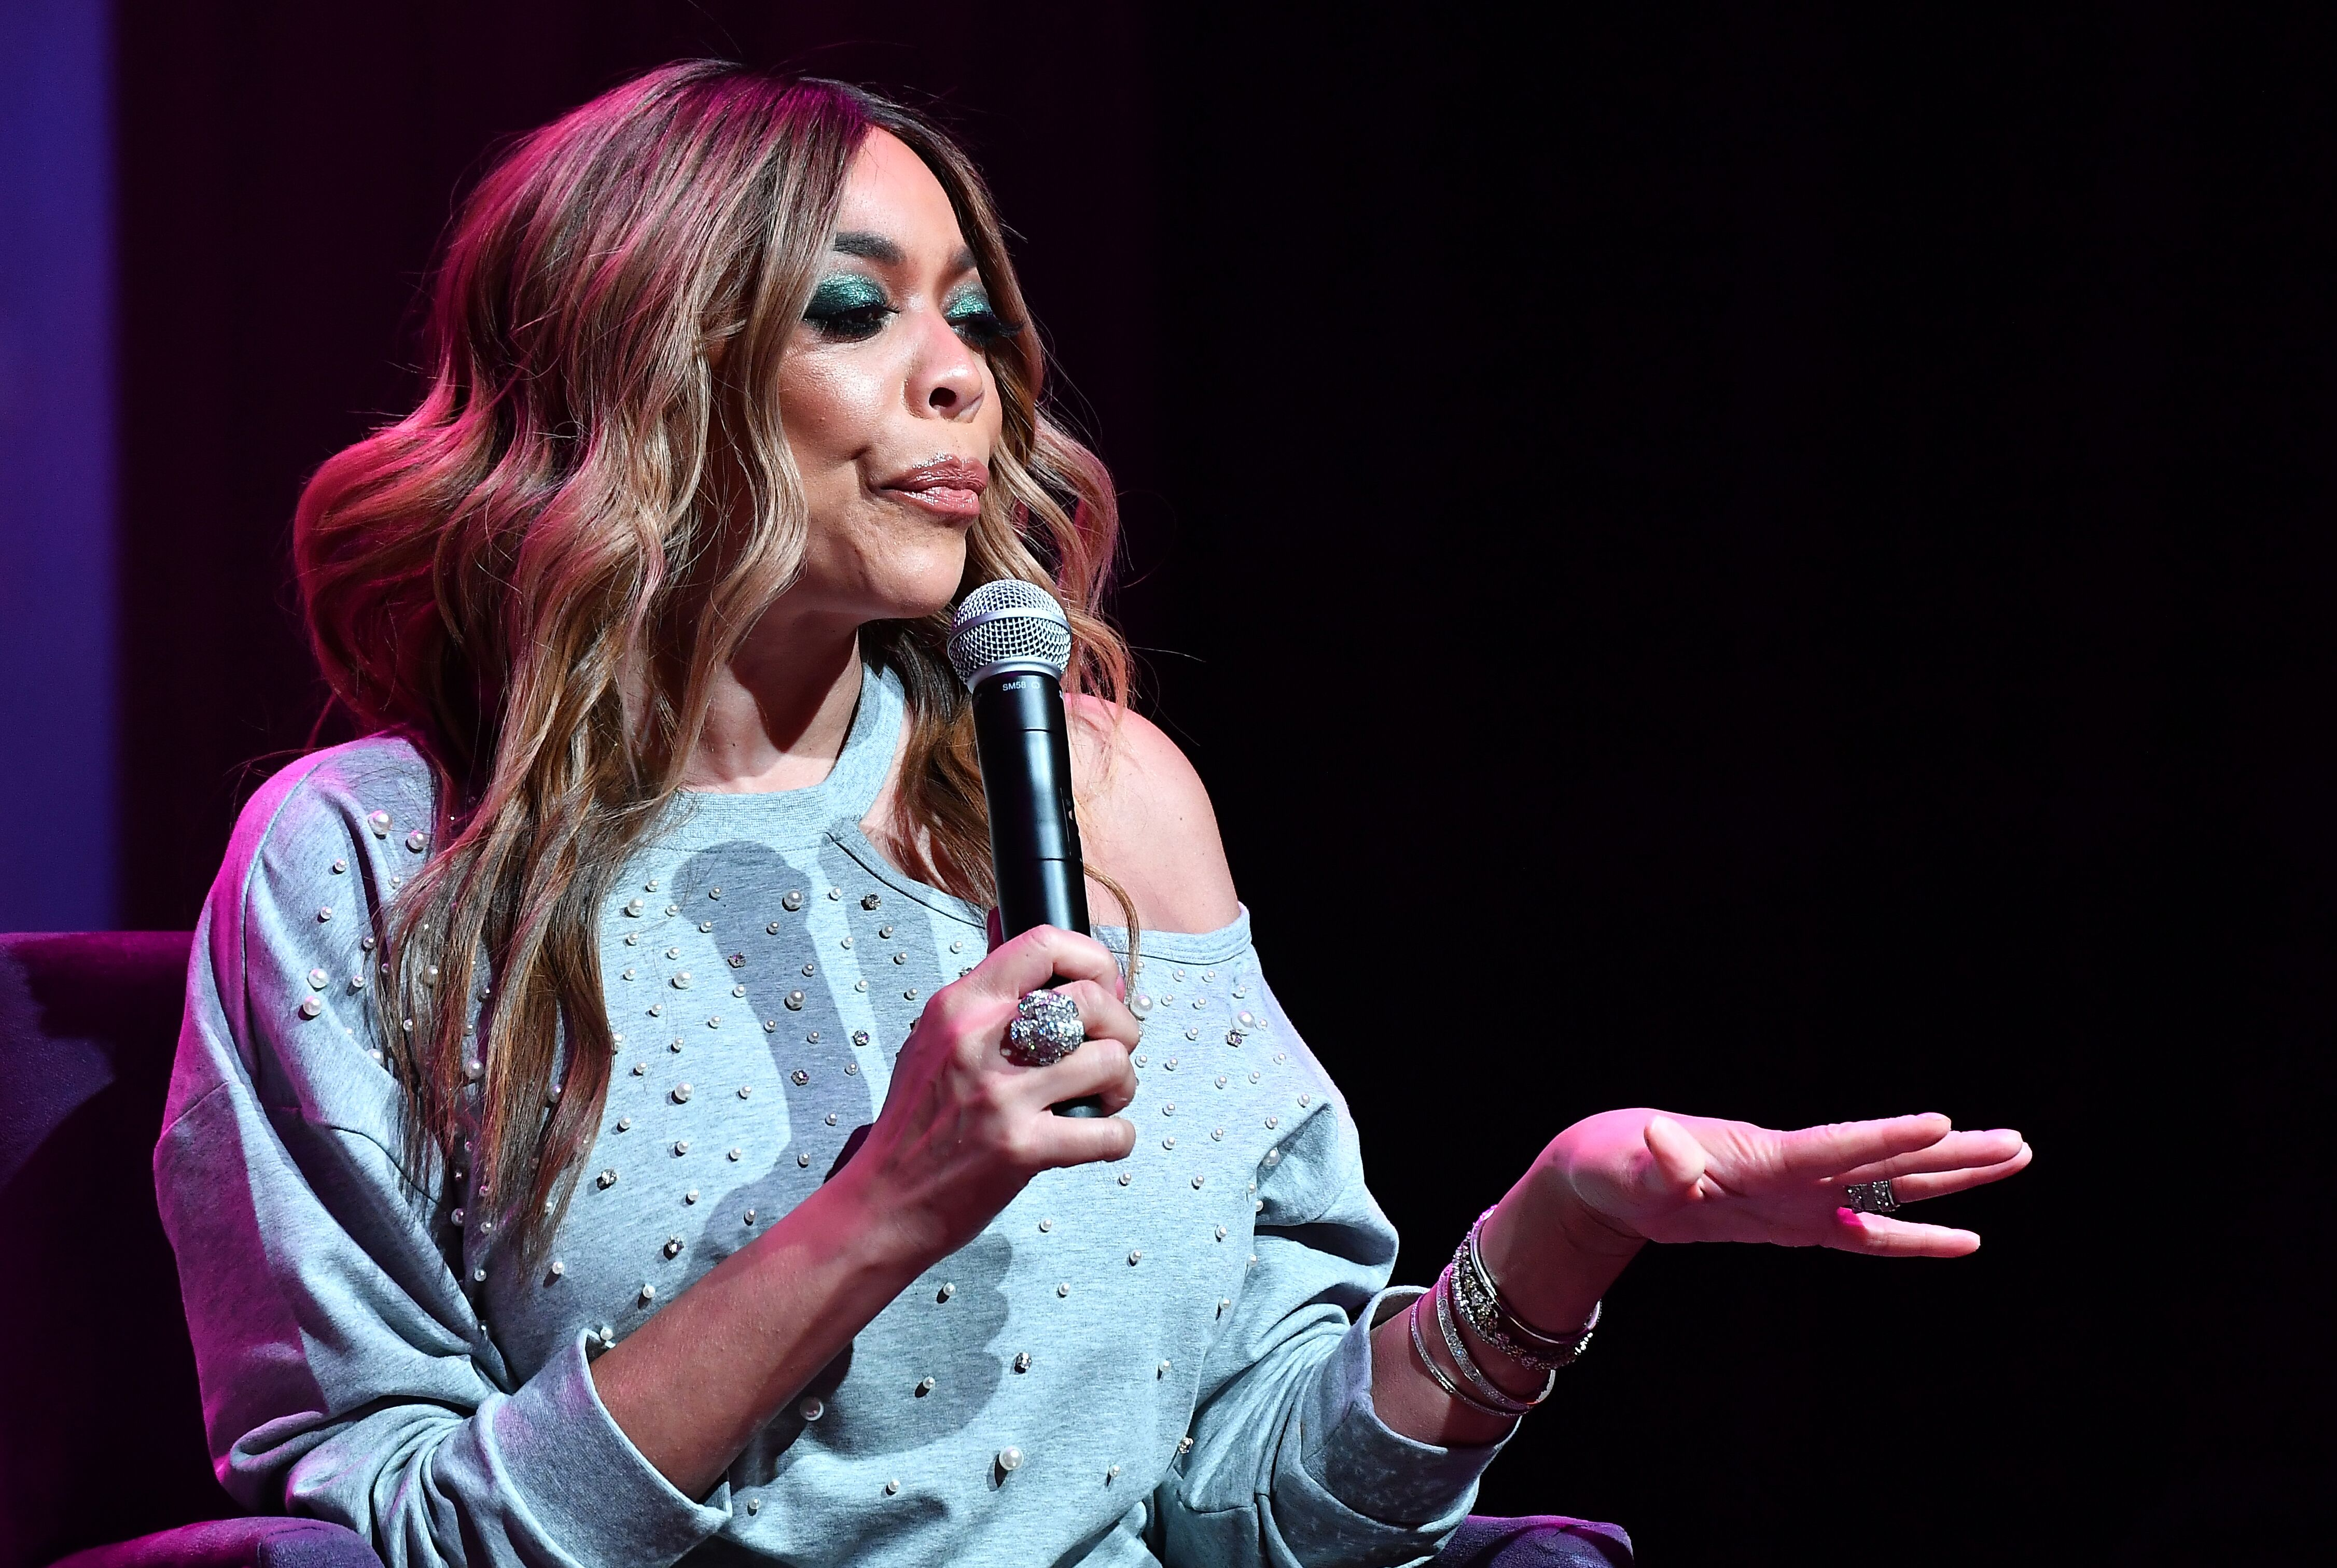 Wendy Williams giving a talk. | Source: Getty Images